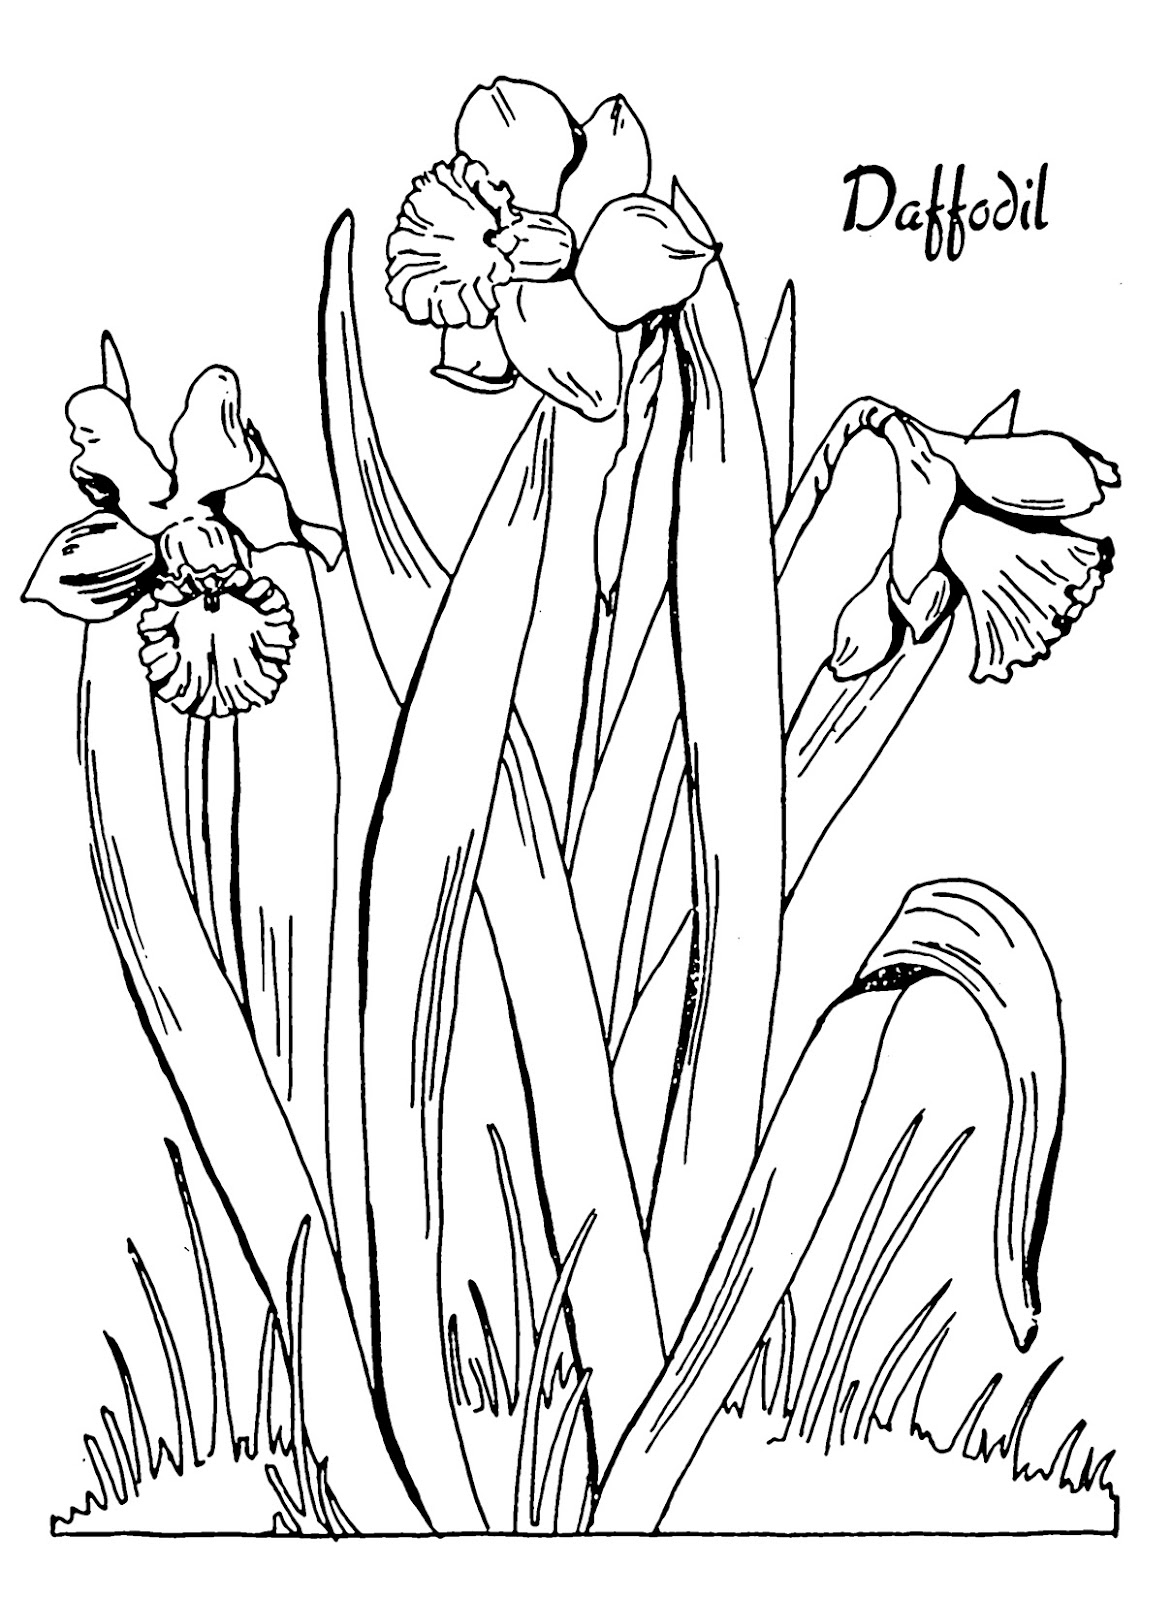 free printable kid coloring pages | Kids Printable - Daffodil Coloring Page - The Graphics Fairy